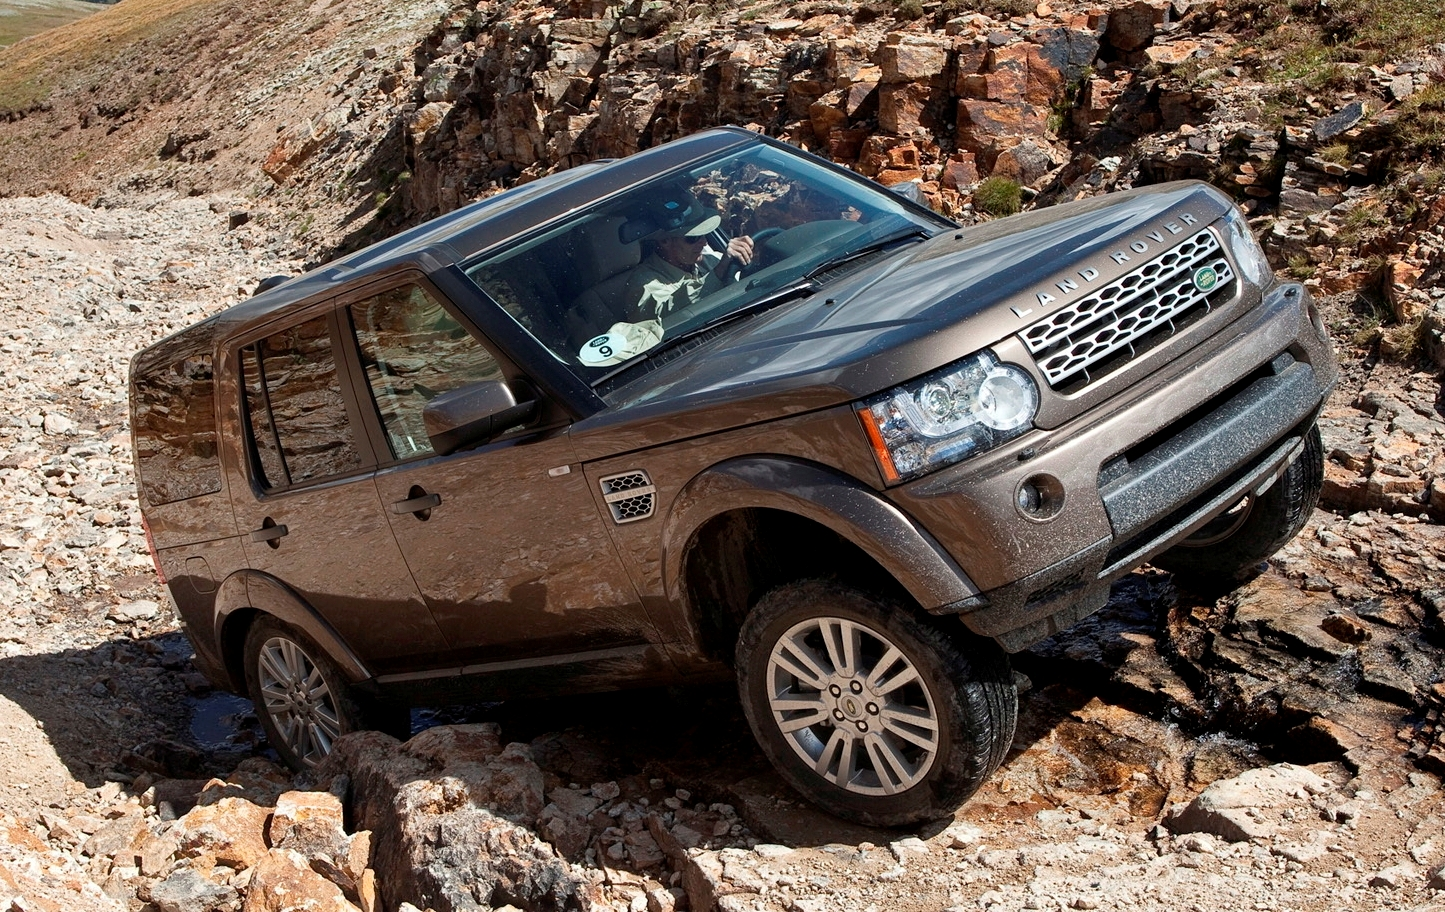 How To Find The Land Rover Spare Parts Shop Via Online